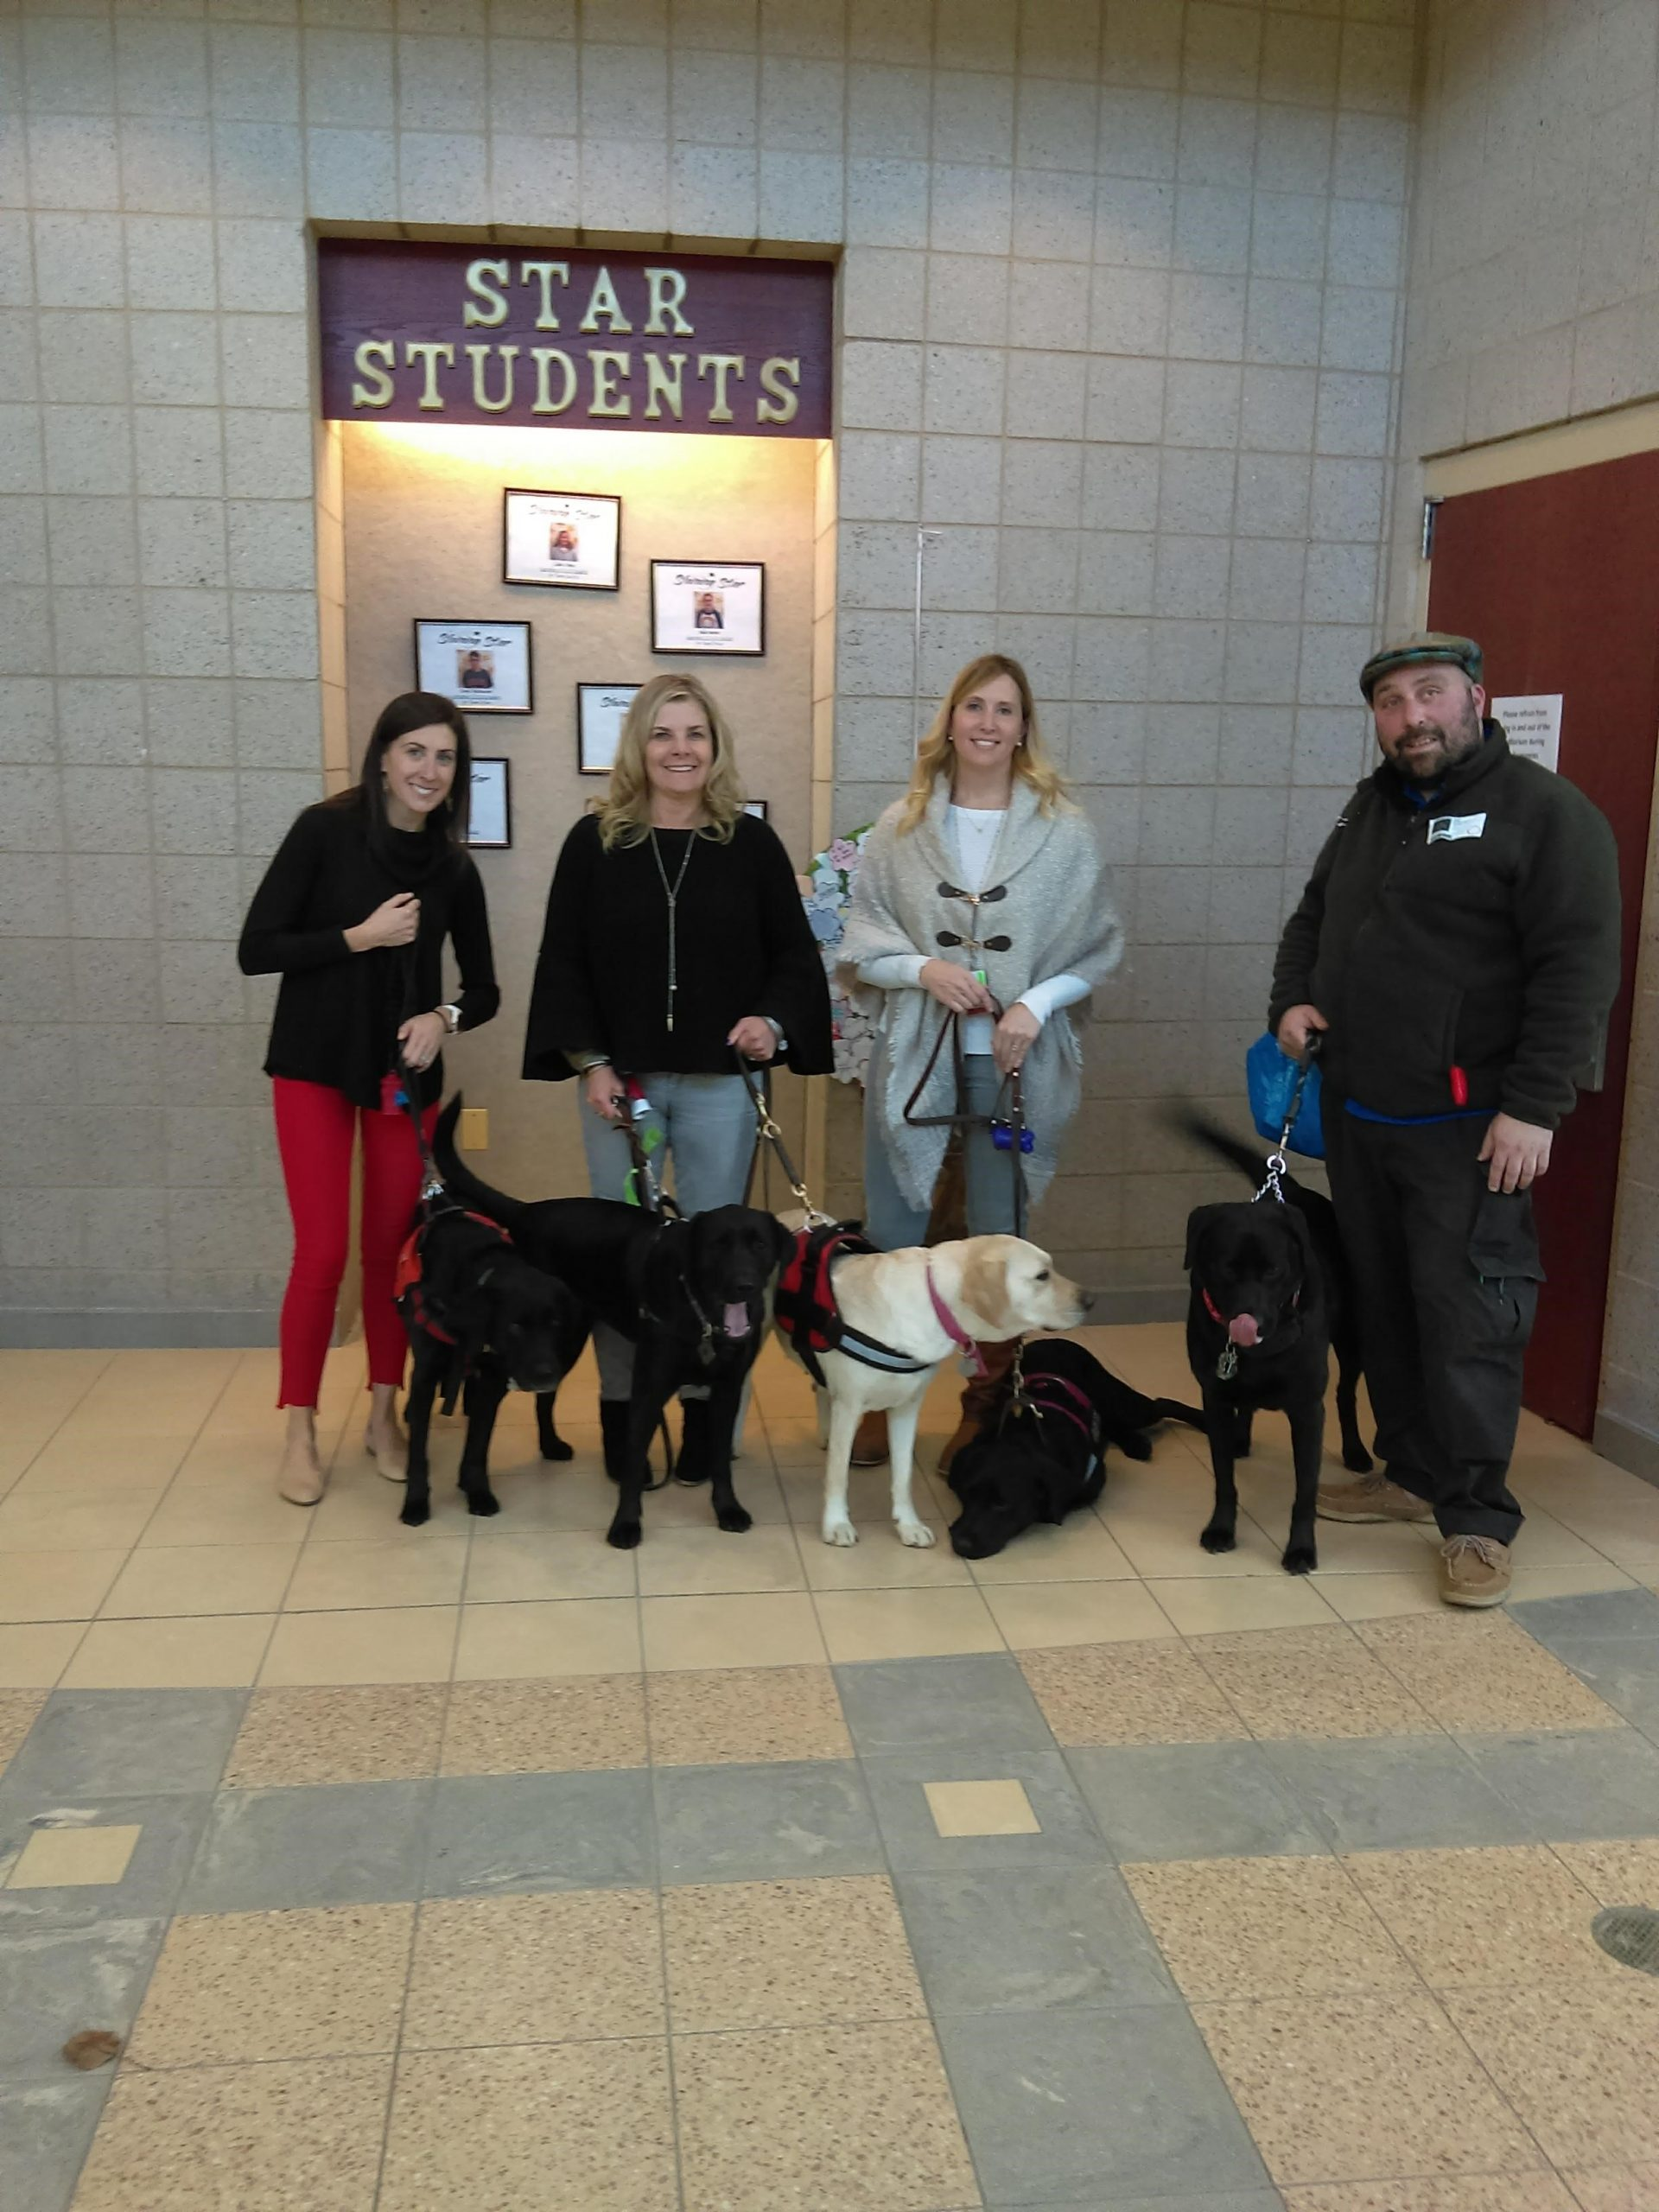 Ridgefield, CT Public Schools | Emotional Support Dogs